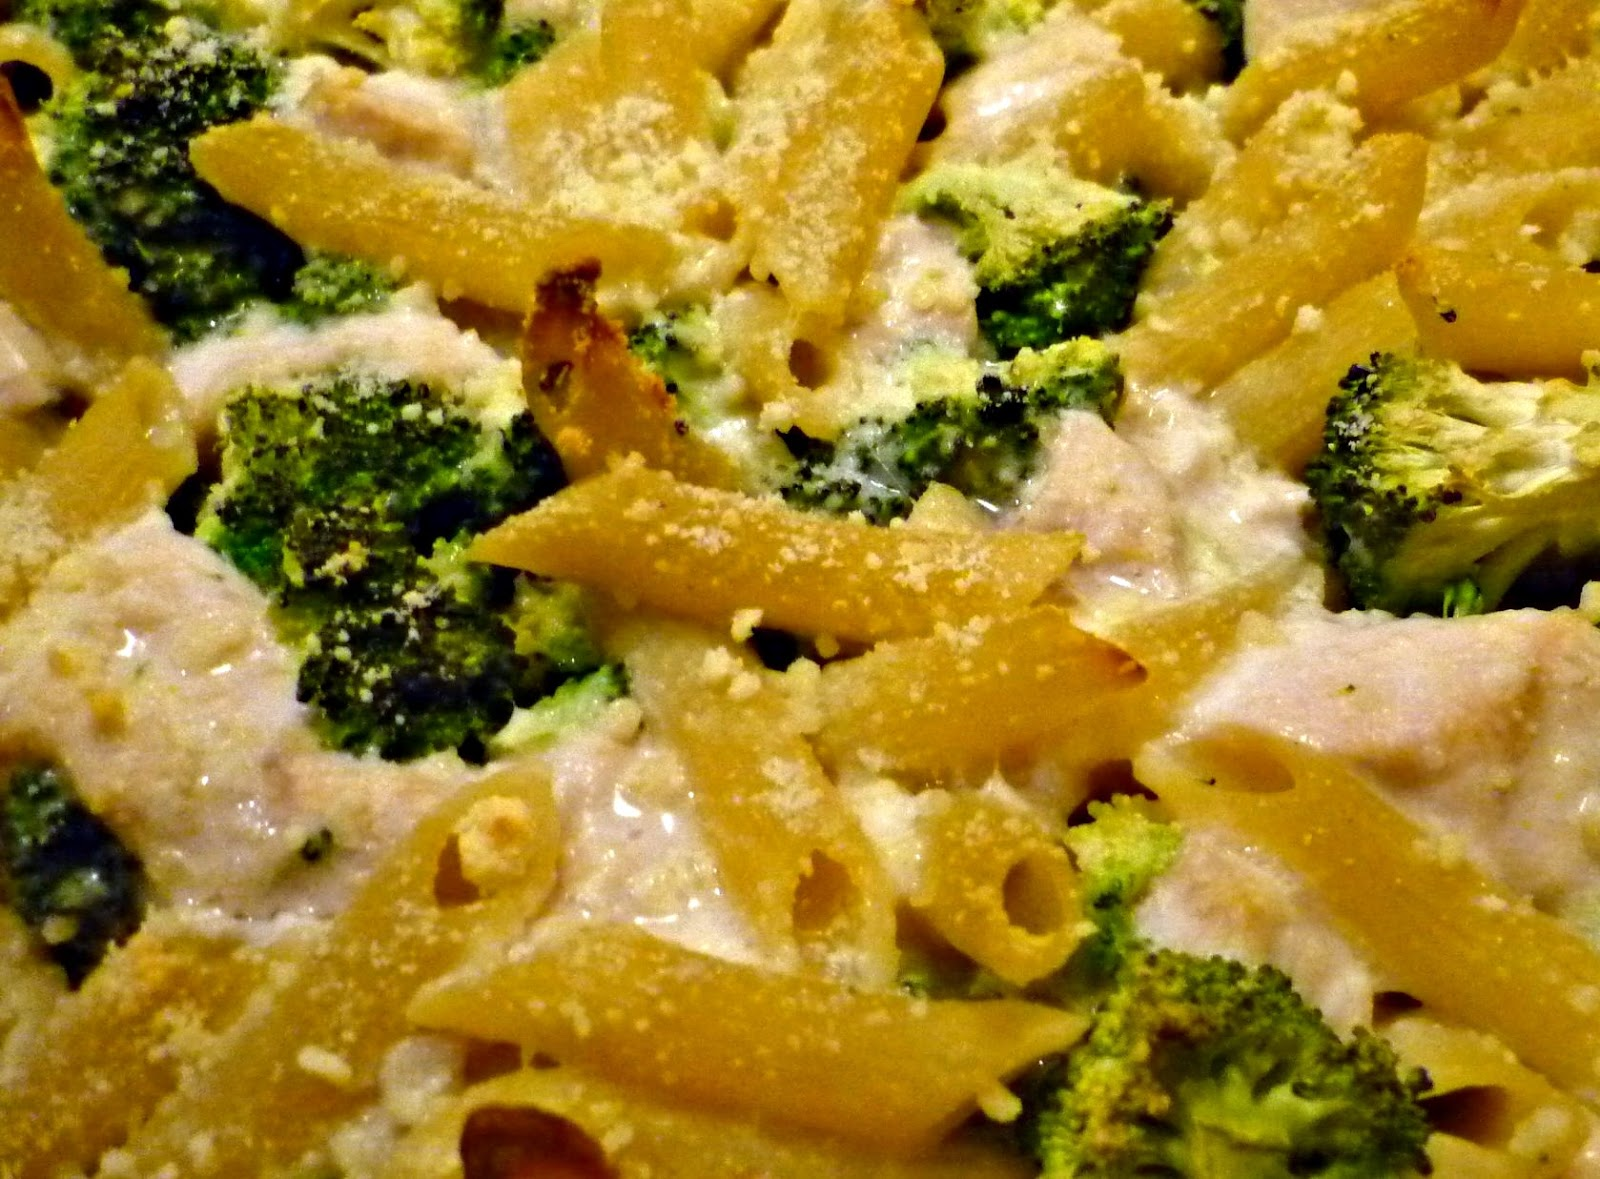 Kitchenette: Creamy Chicken and Broccoli Casserole